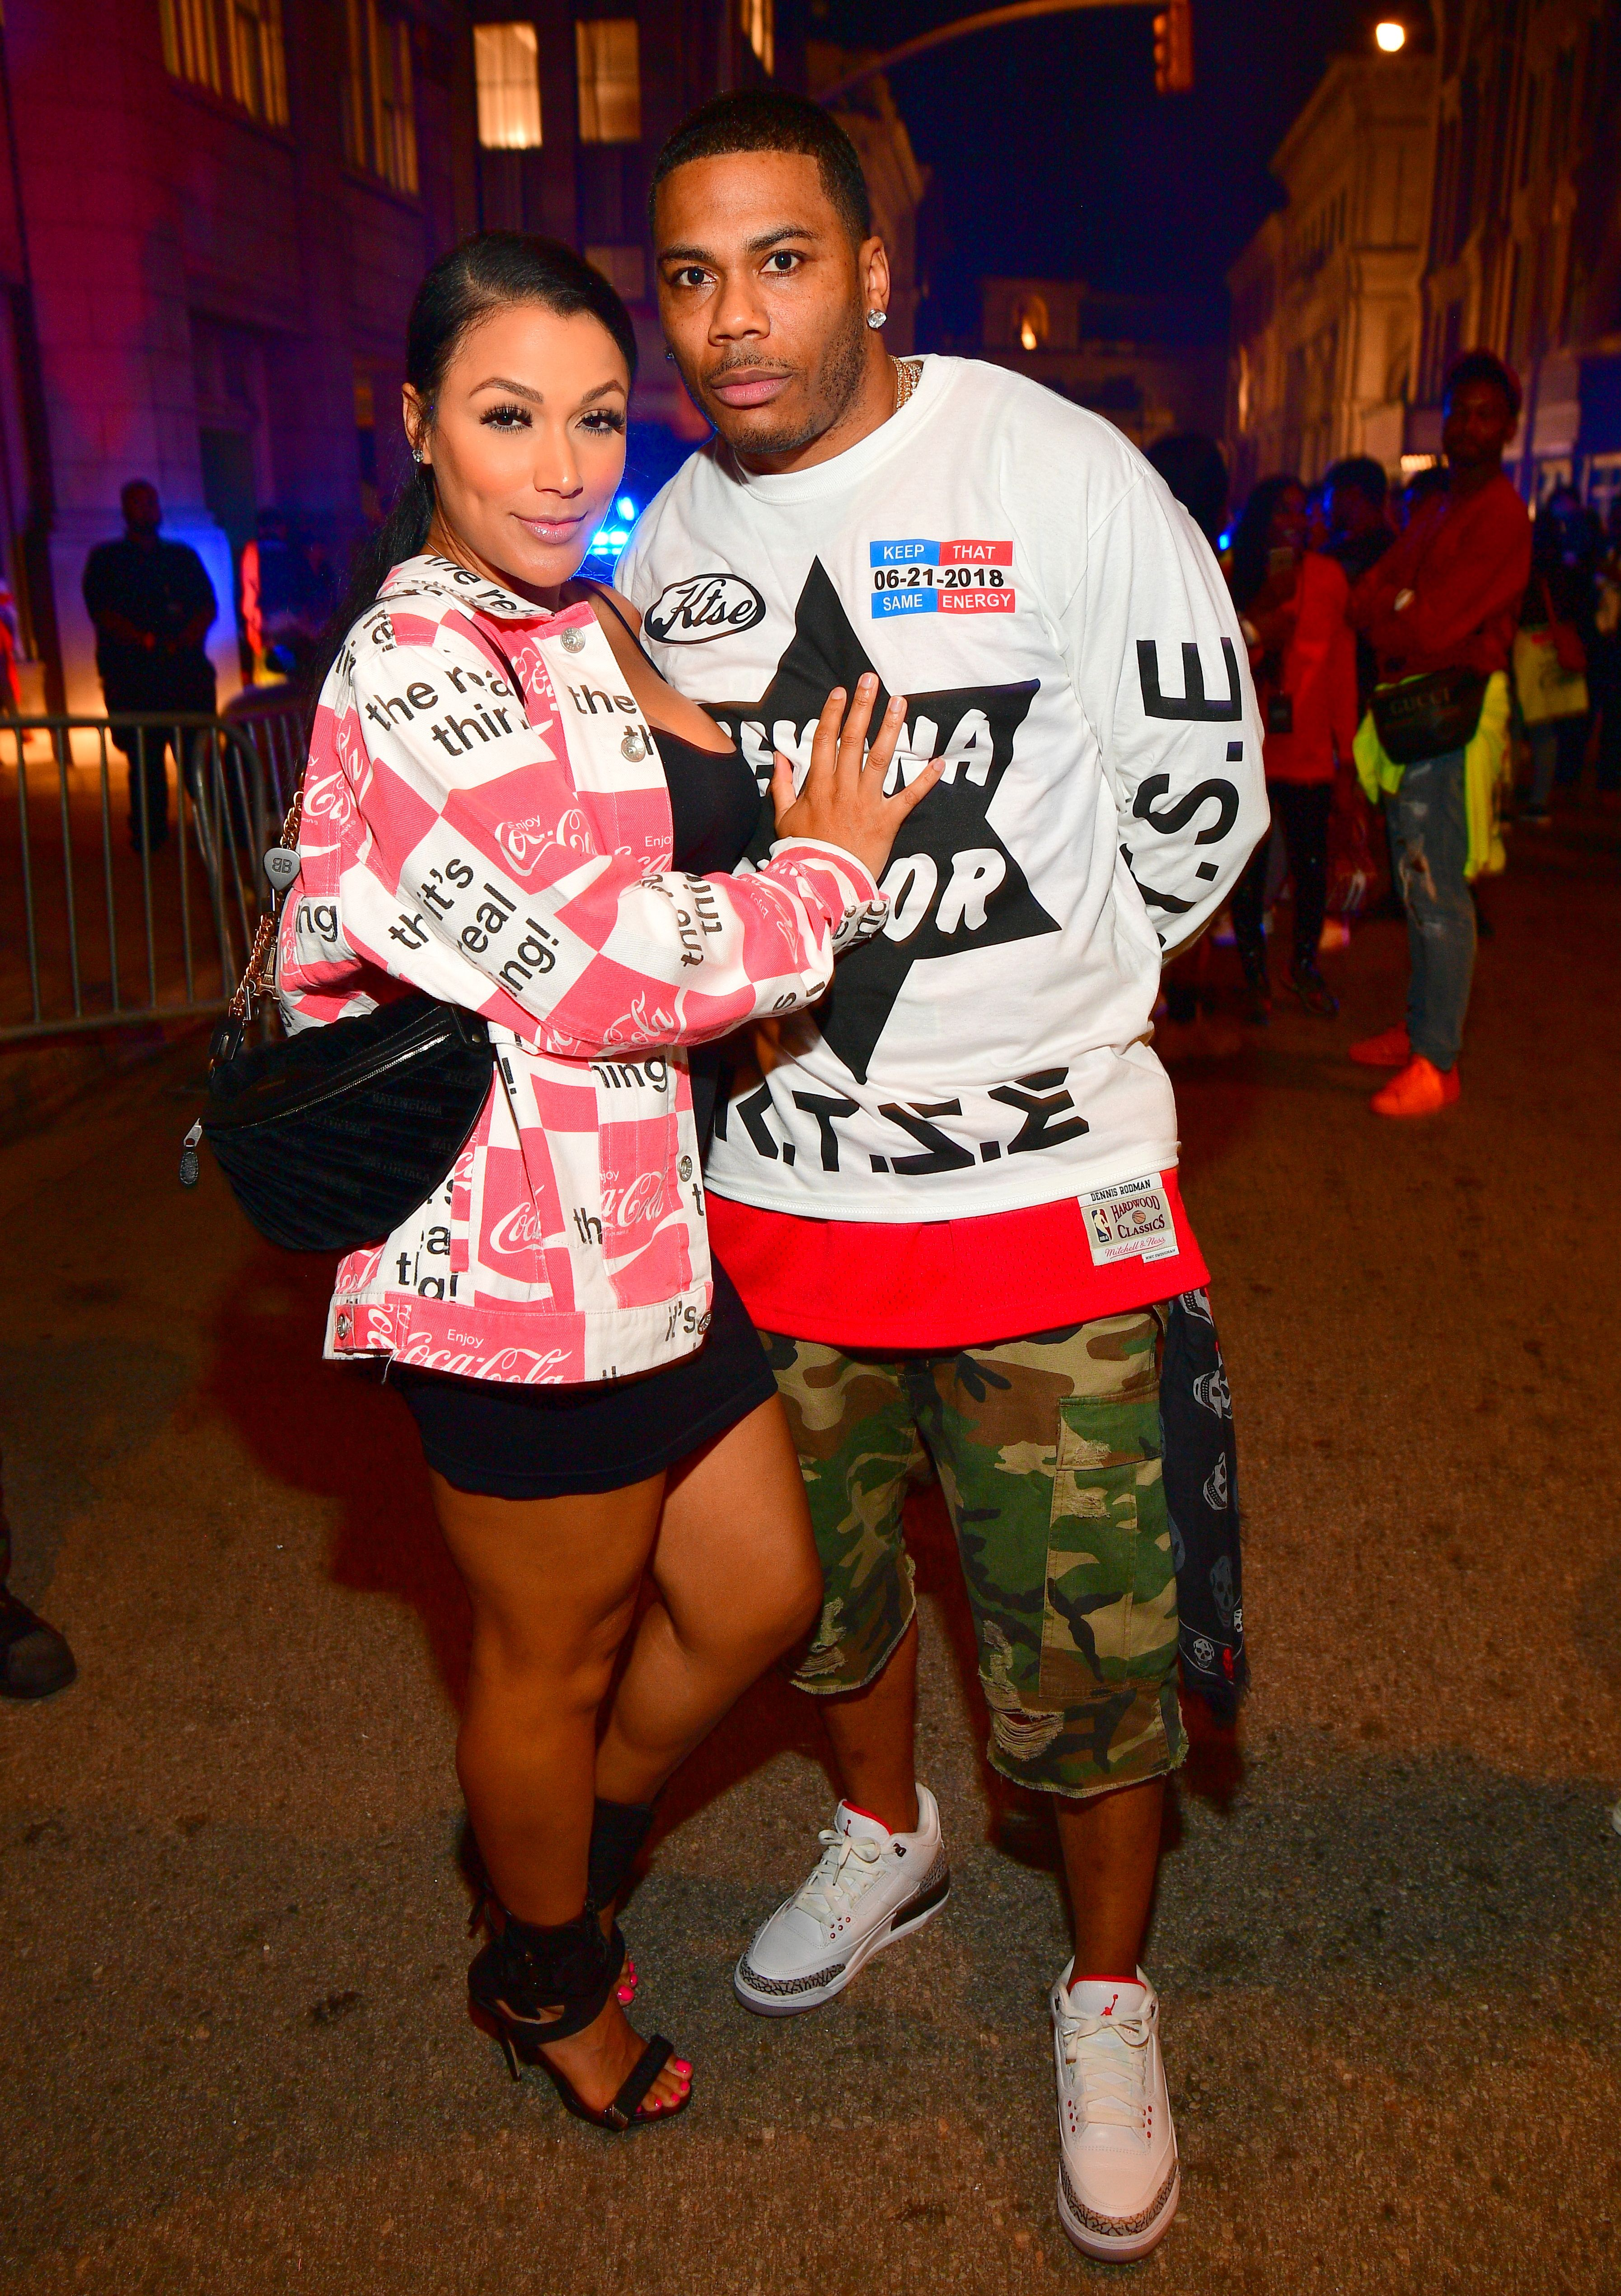 Shantel Jackson and Nelly at the Teyana Taylor album release party at Universal Studios Hollywood on June 21, 2018 in Universal City, California. | Source: Getty Images